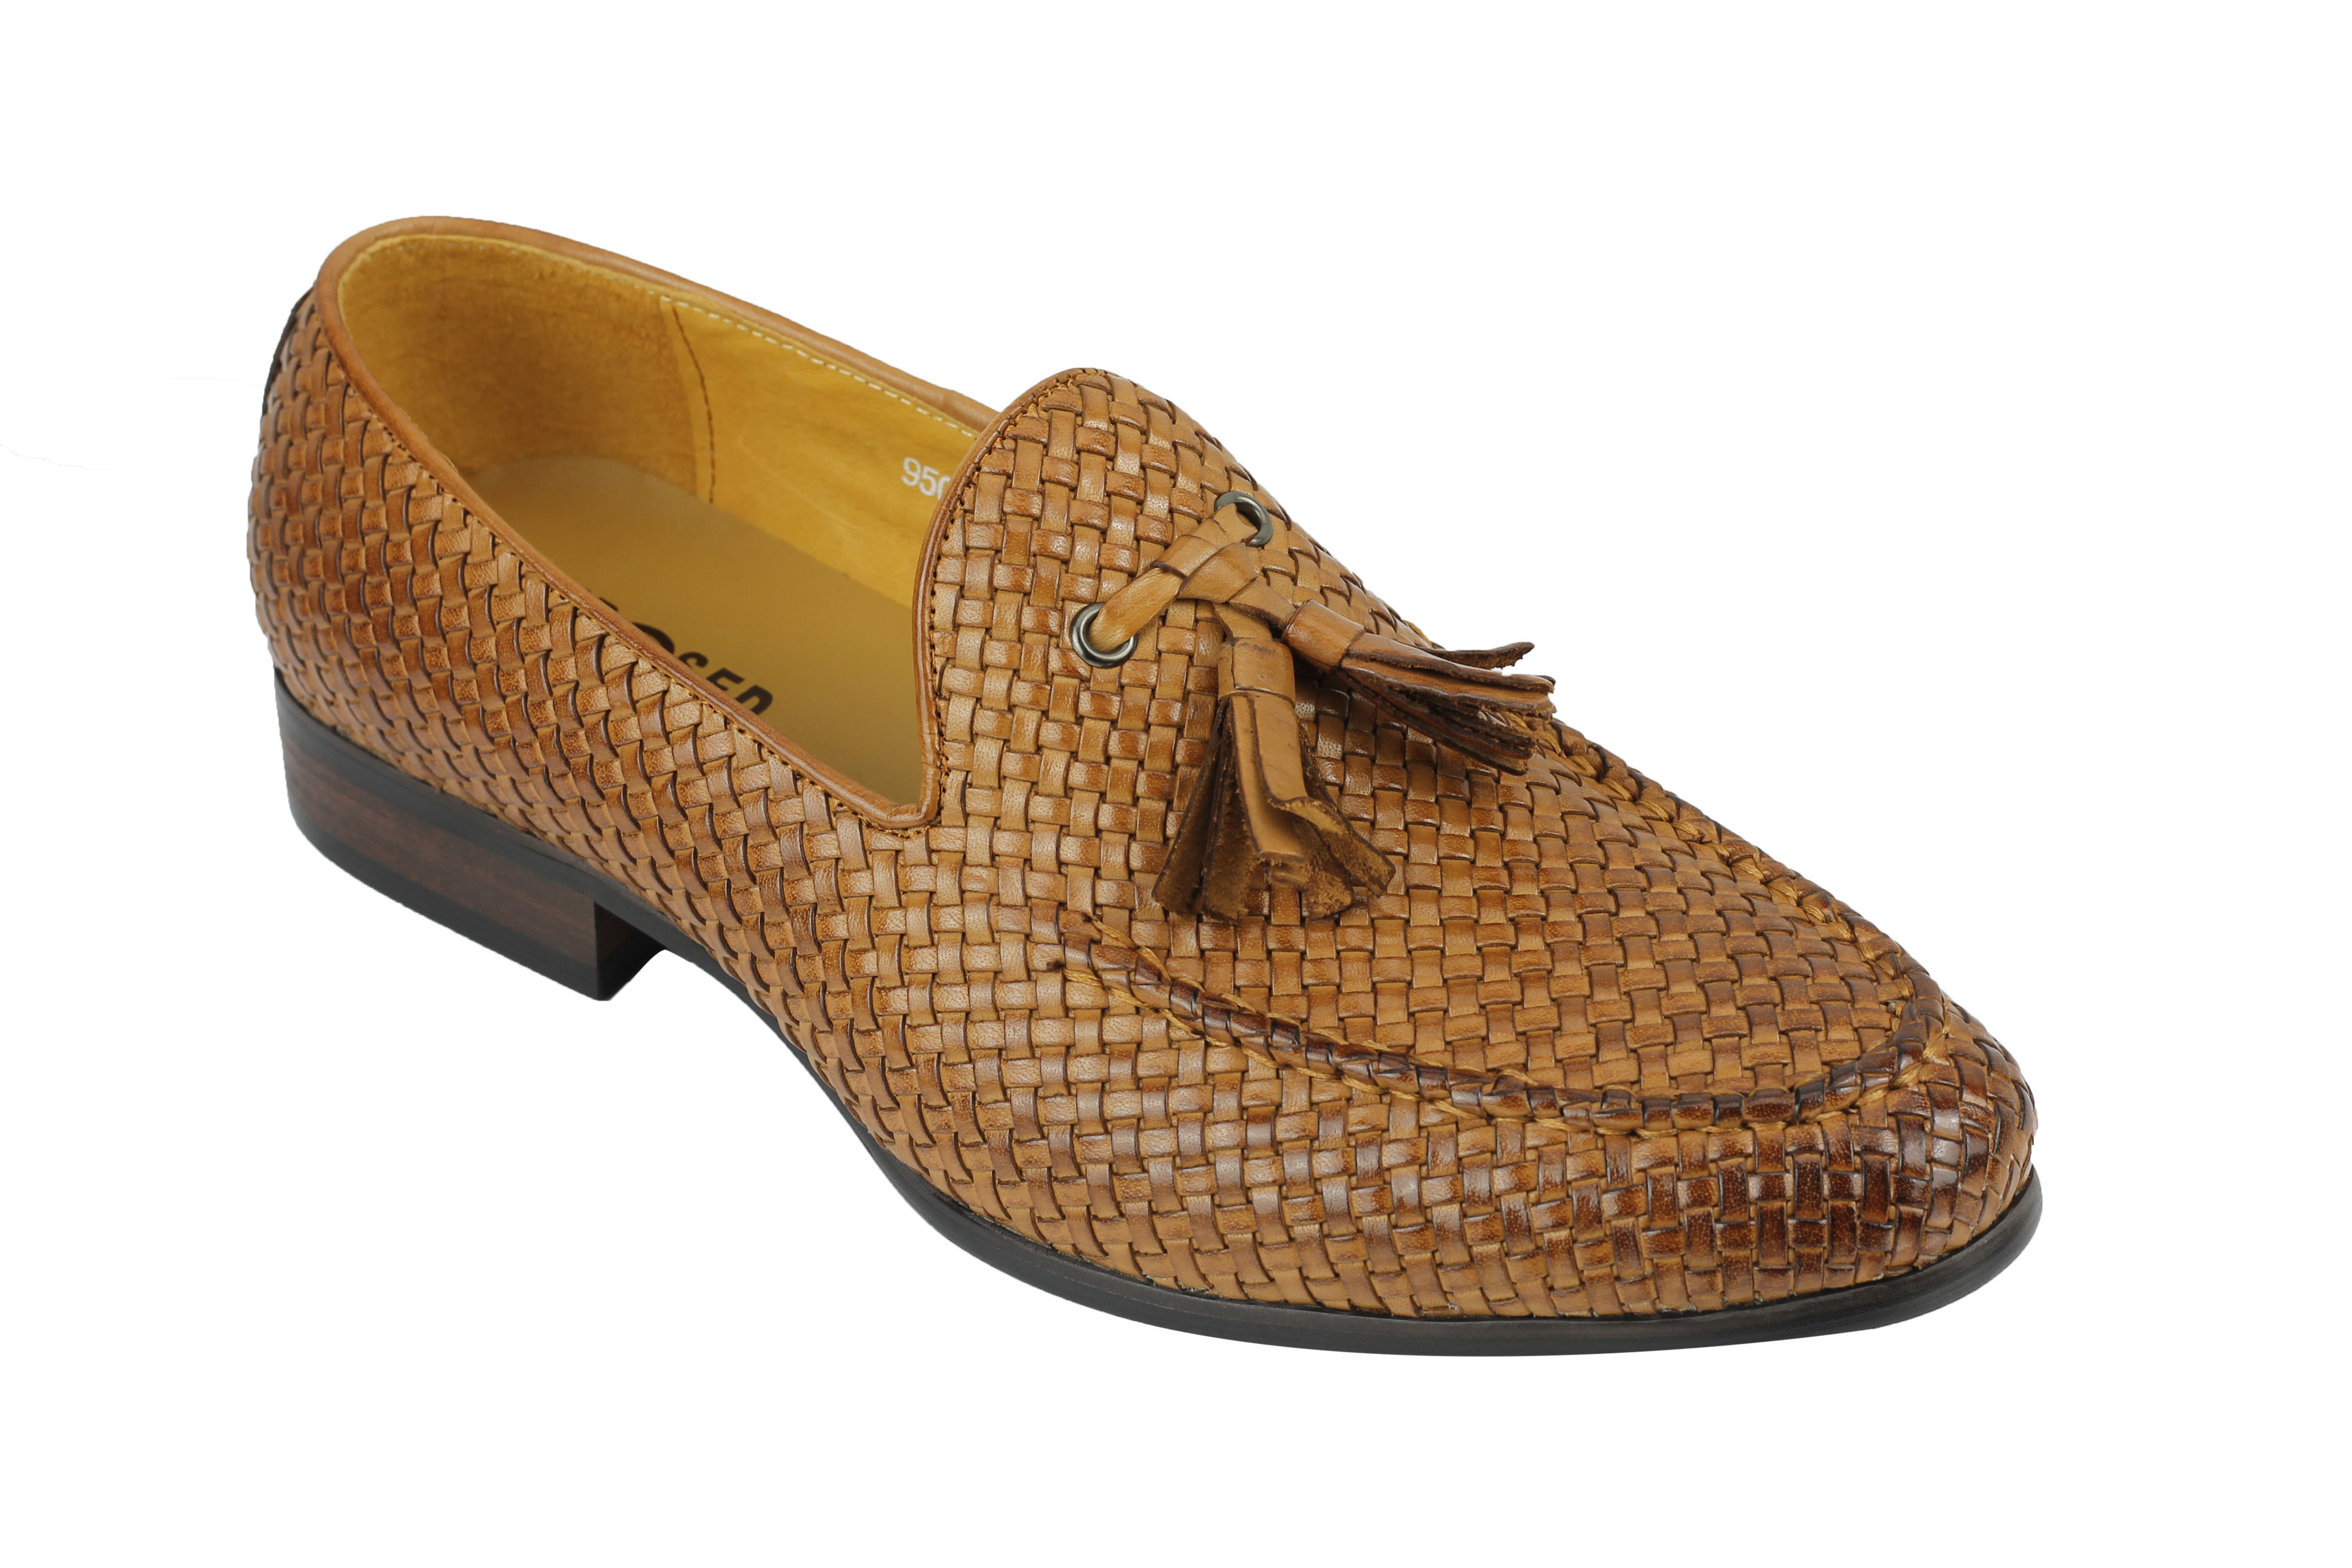 Herren Hand Small Woven Woven Woven Real Leder Tassel Loafers Smart MOD Vintage Schuhes 949fa4